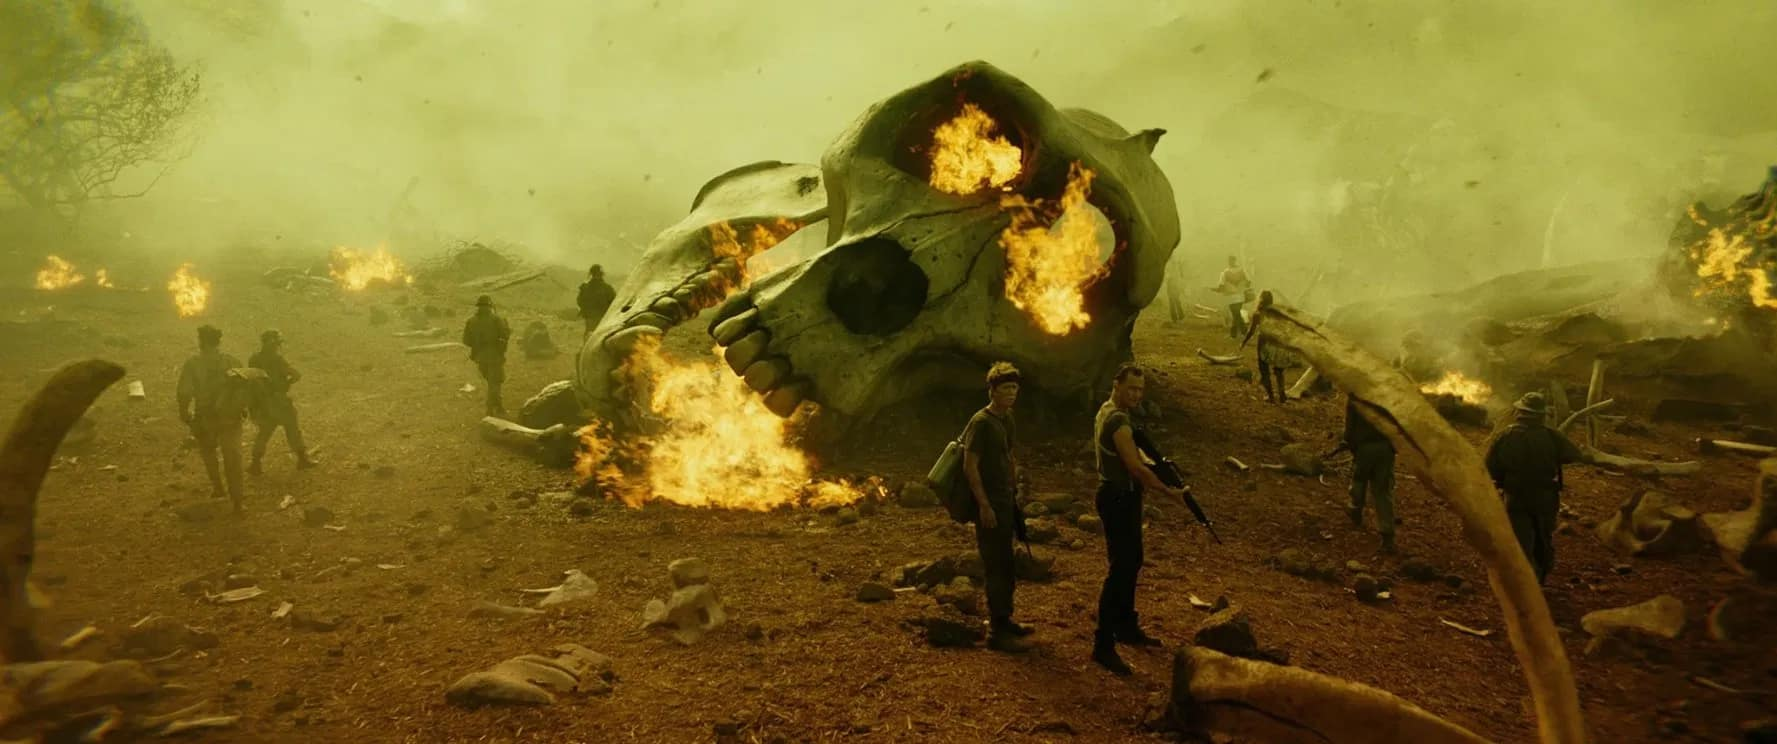 Apocalypse Now Kong: Skull Island Is an Existential War Movie